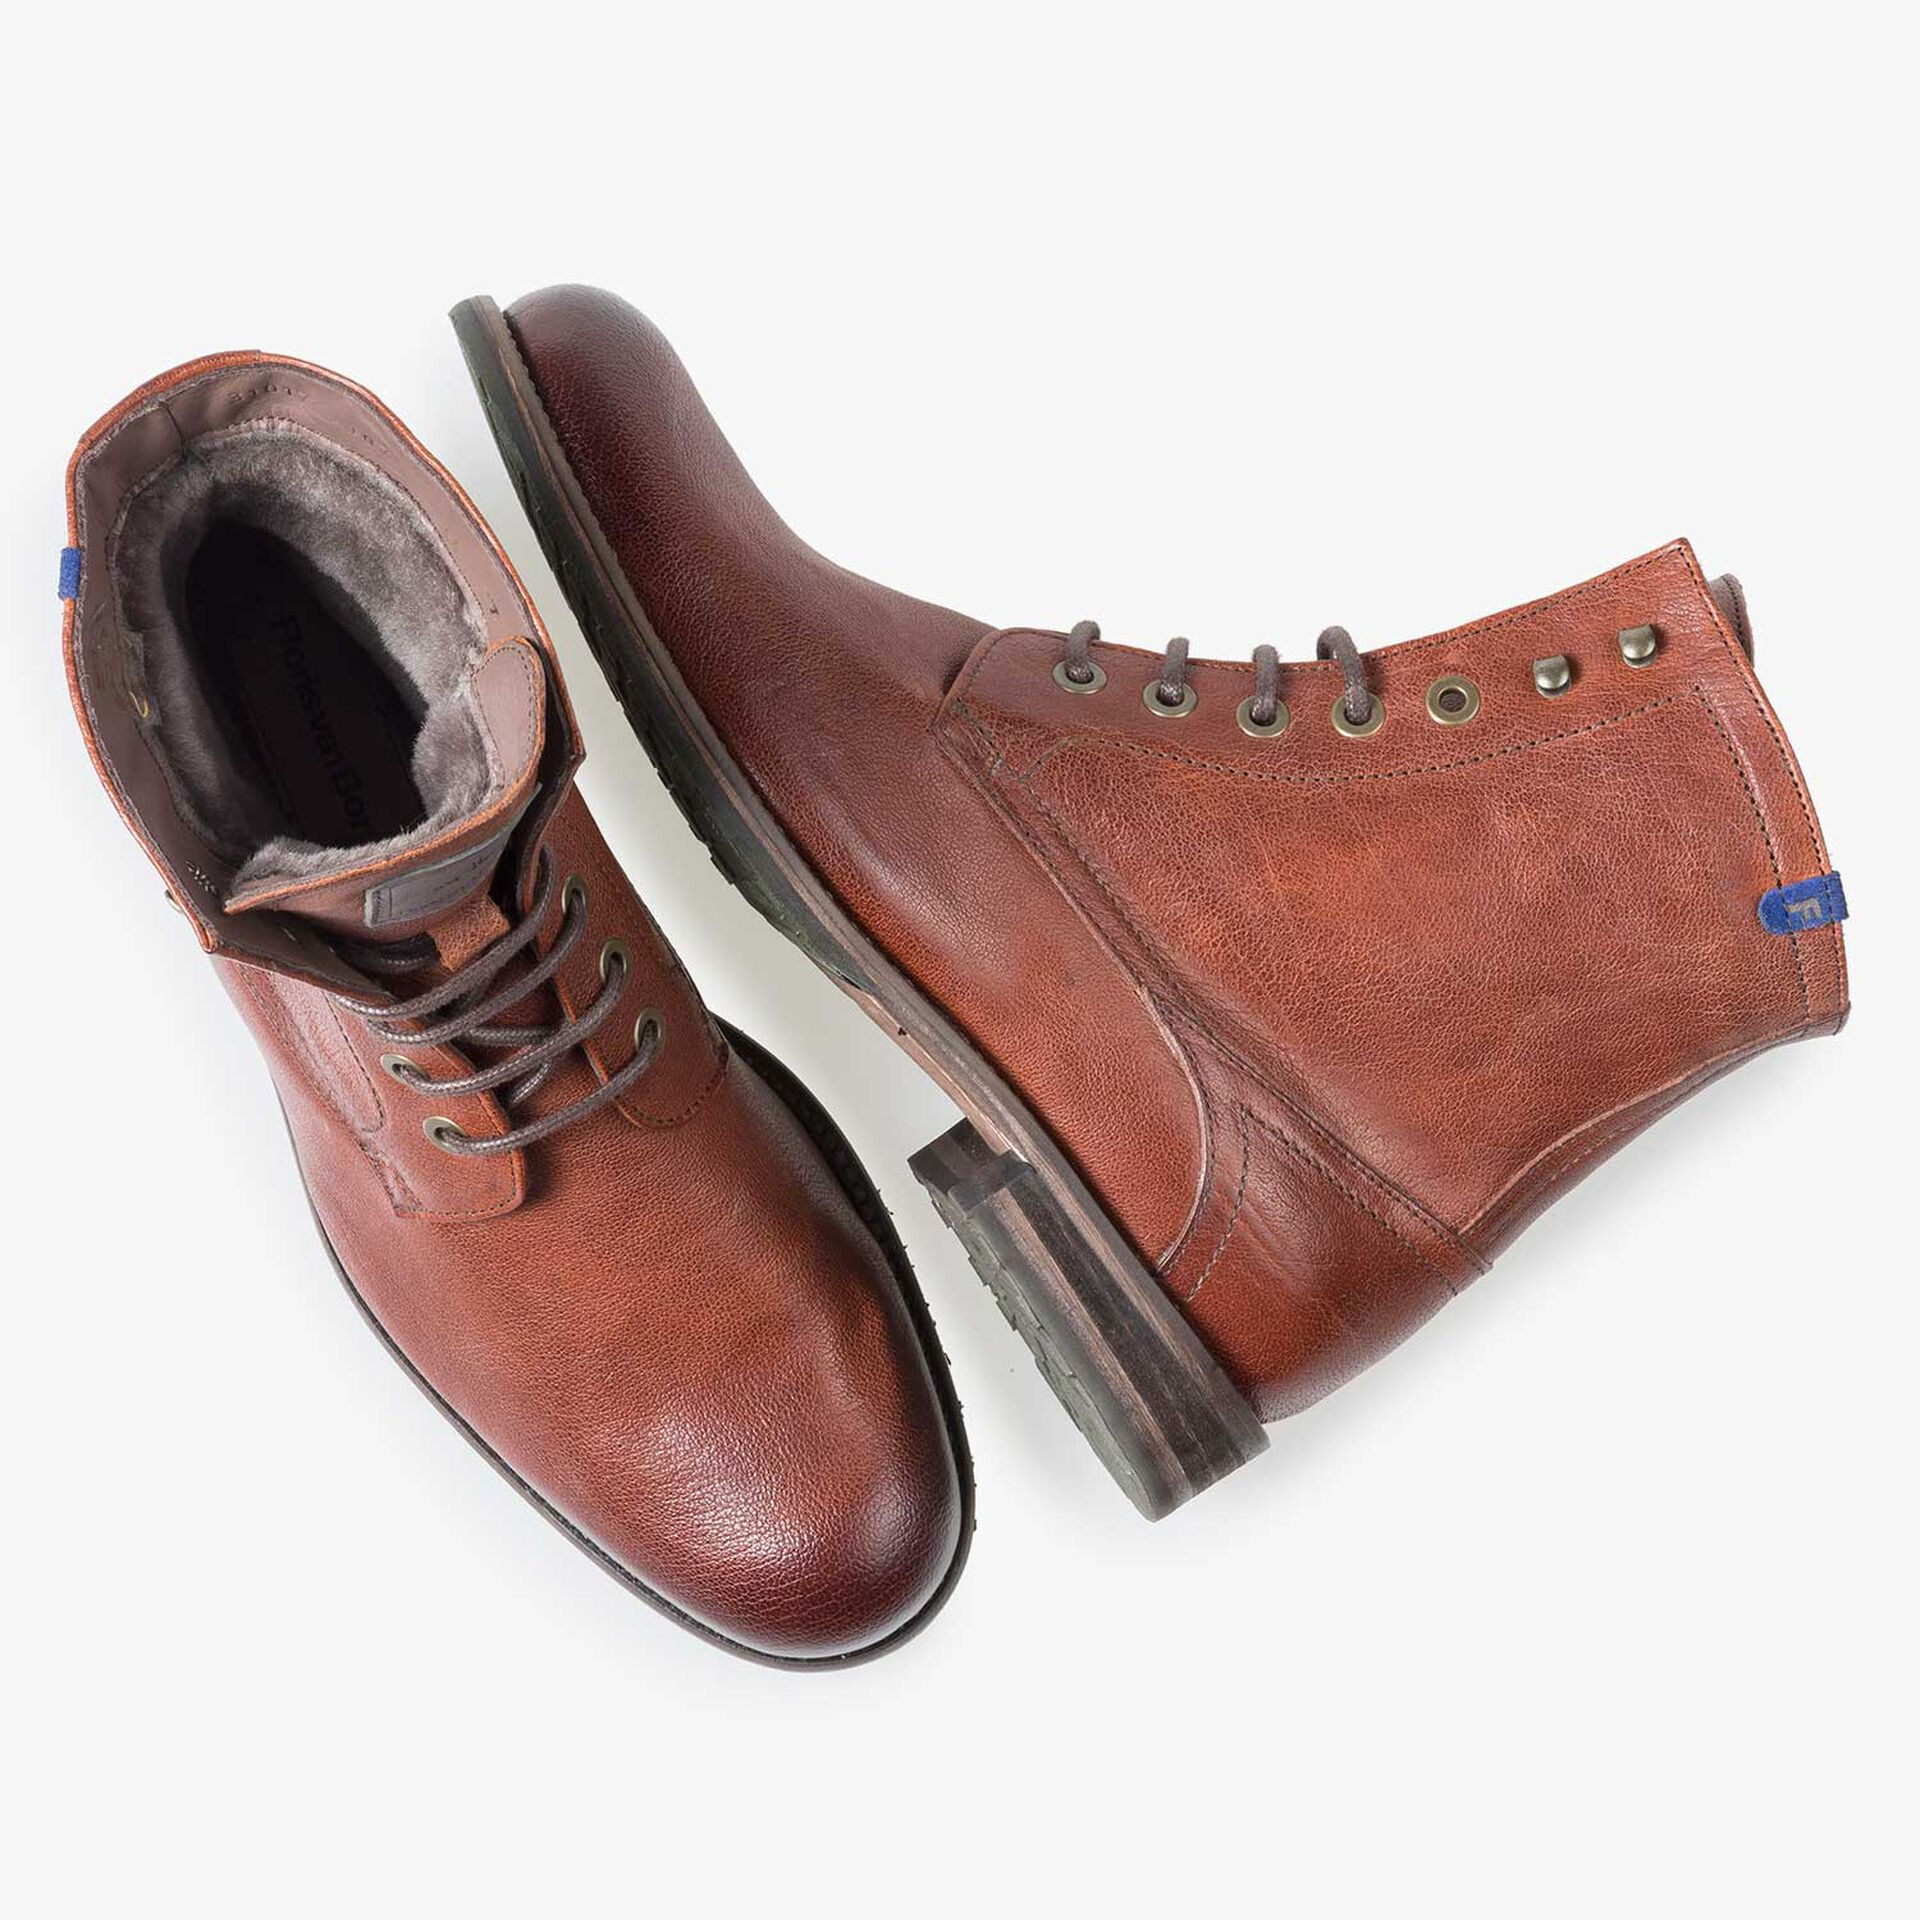 Lined cognac-coloured leather lace boot